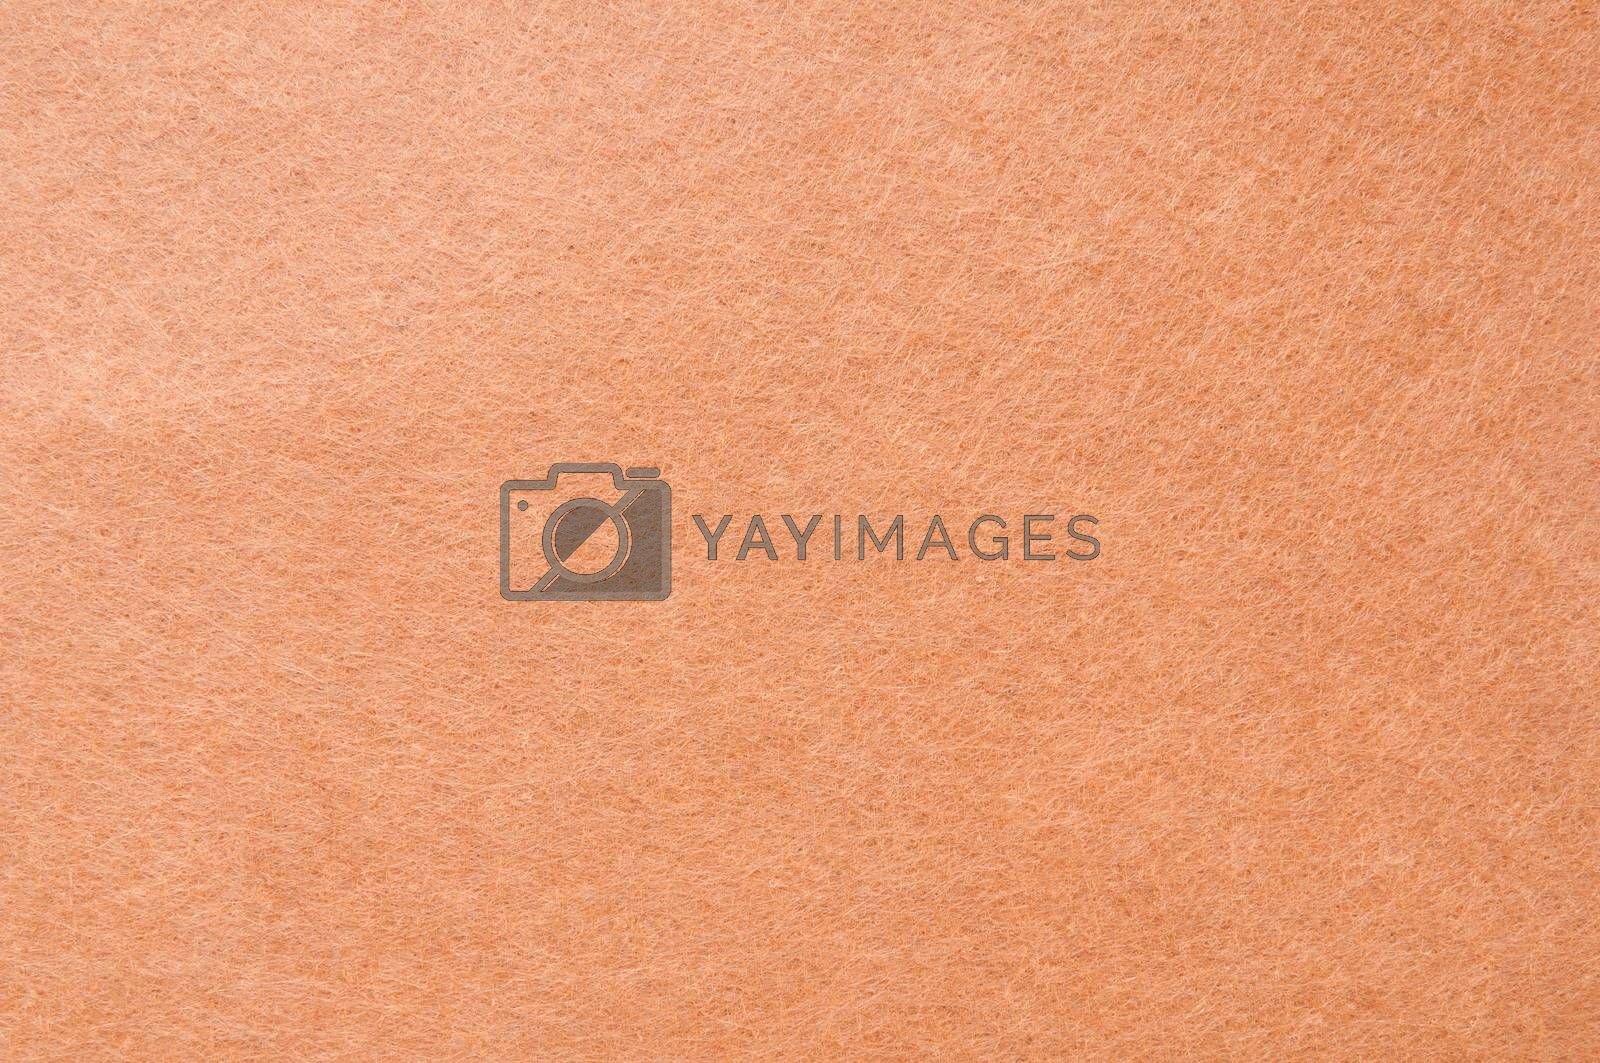 Texture background of Light Brown velvet or Orange flannel Fabric as backdrop or wallpaper pattern for decoration